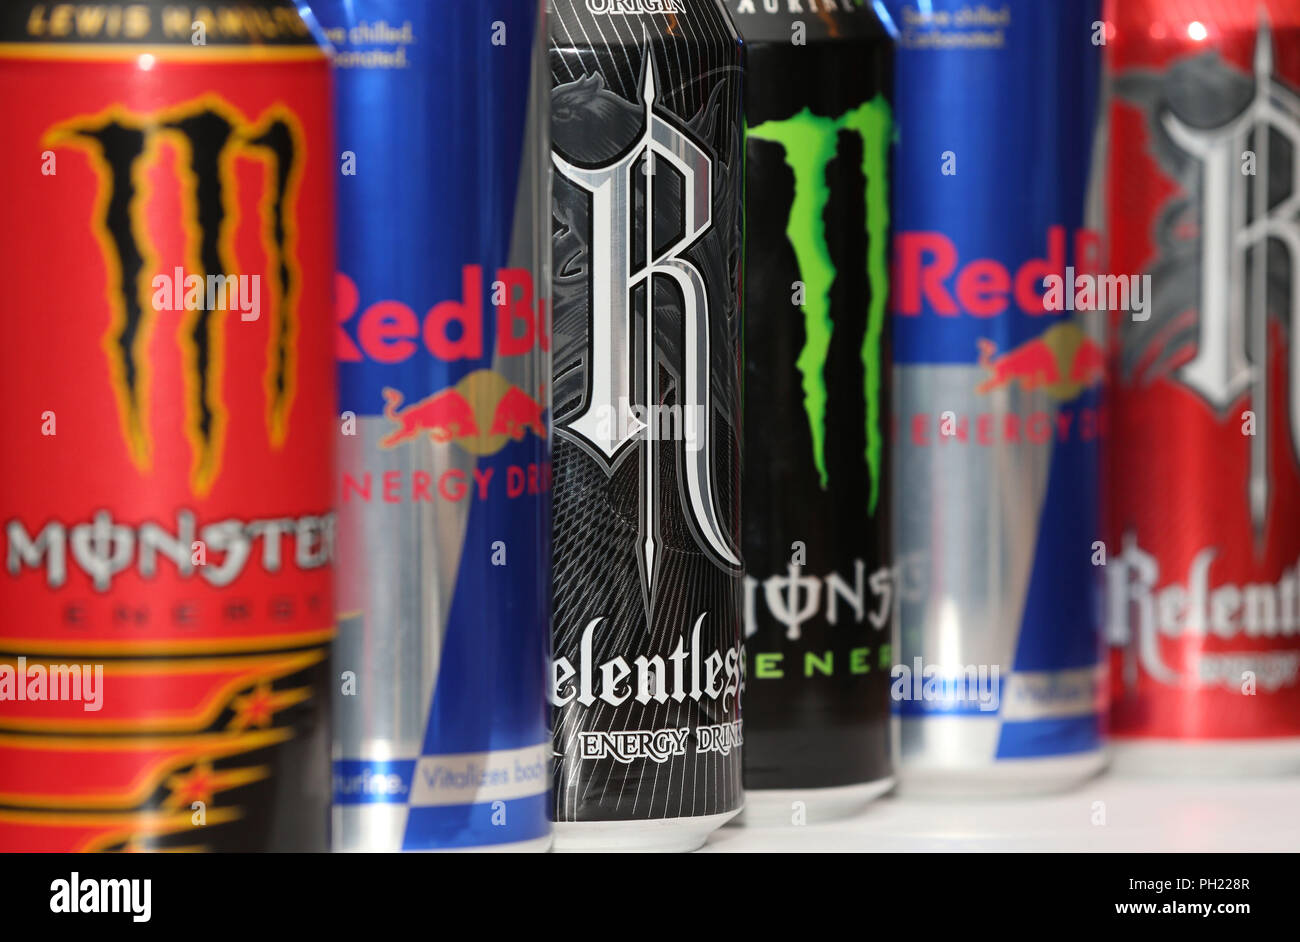 Red Bull Kühlschrank Promotion : Cans red bull stockfotos & cans red bull bilder alamy